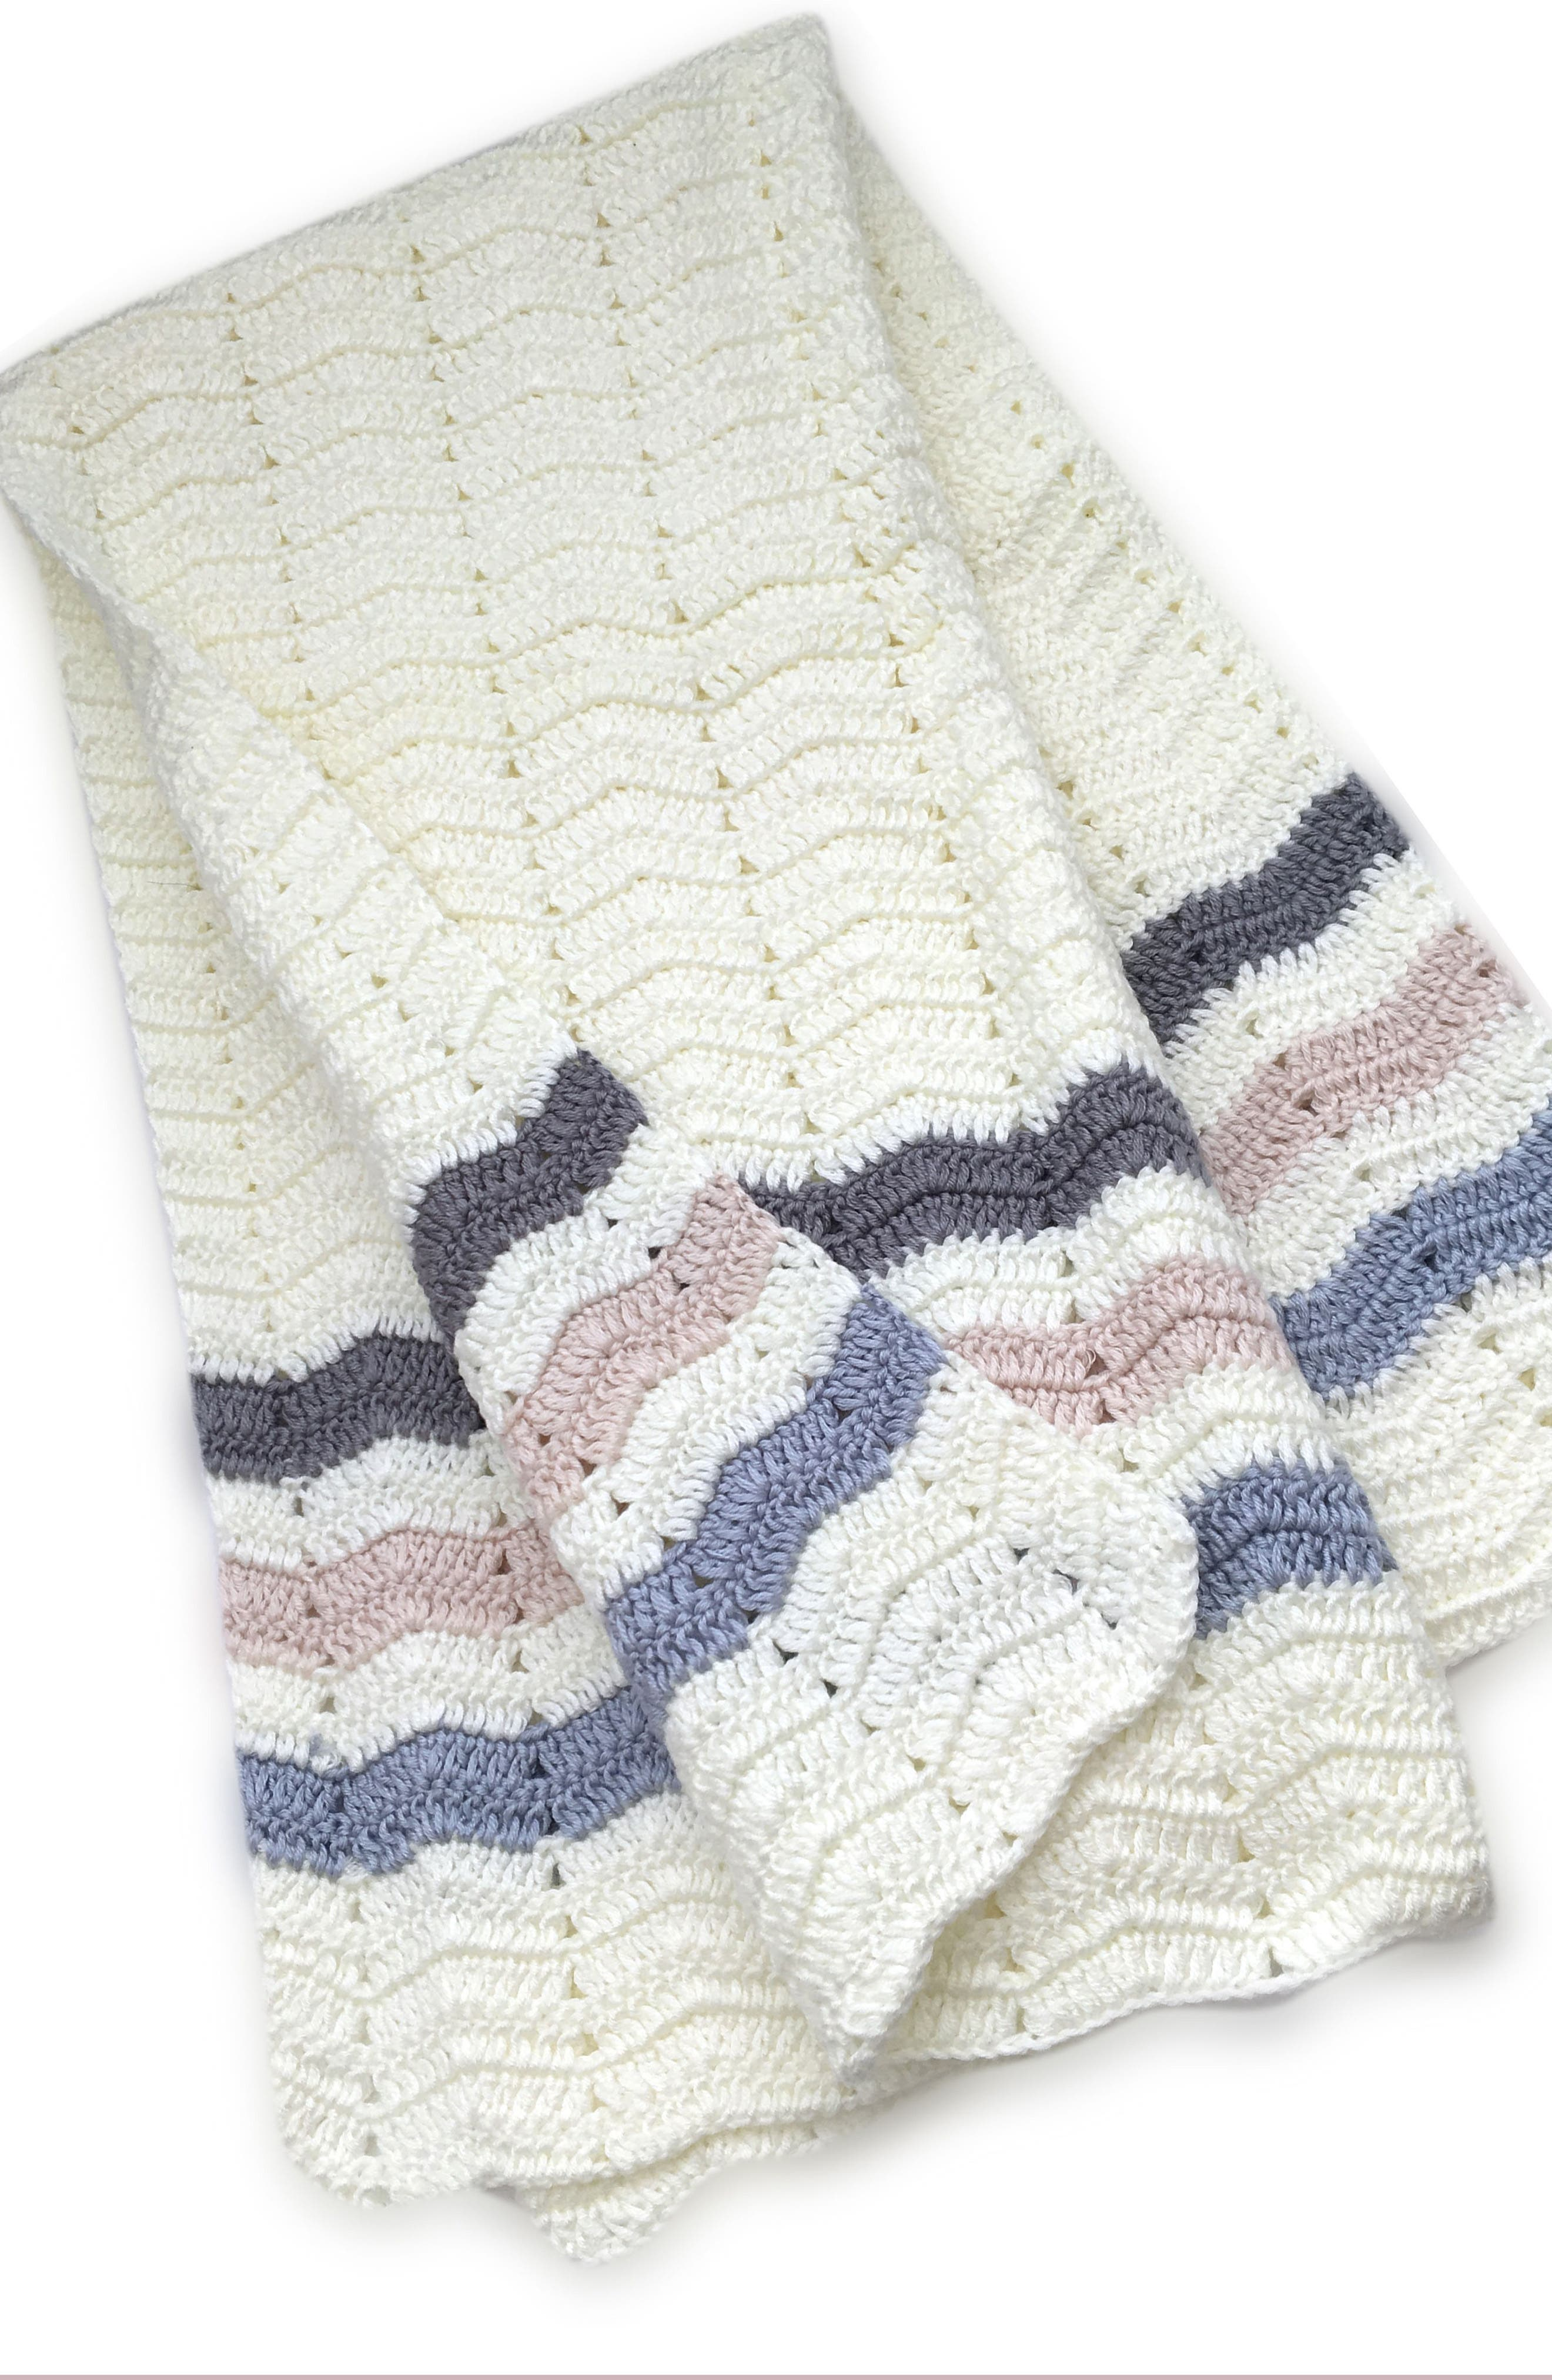 Ripple Crocheted Blanket,                             Main thumbnail 1, color,                             Blue